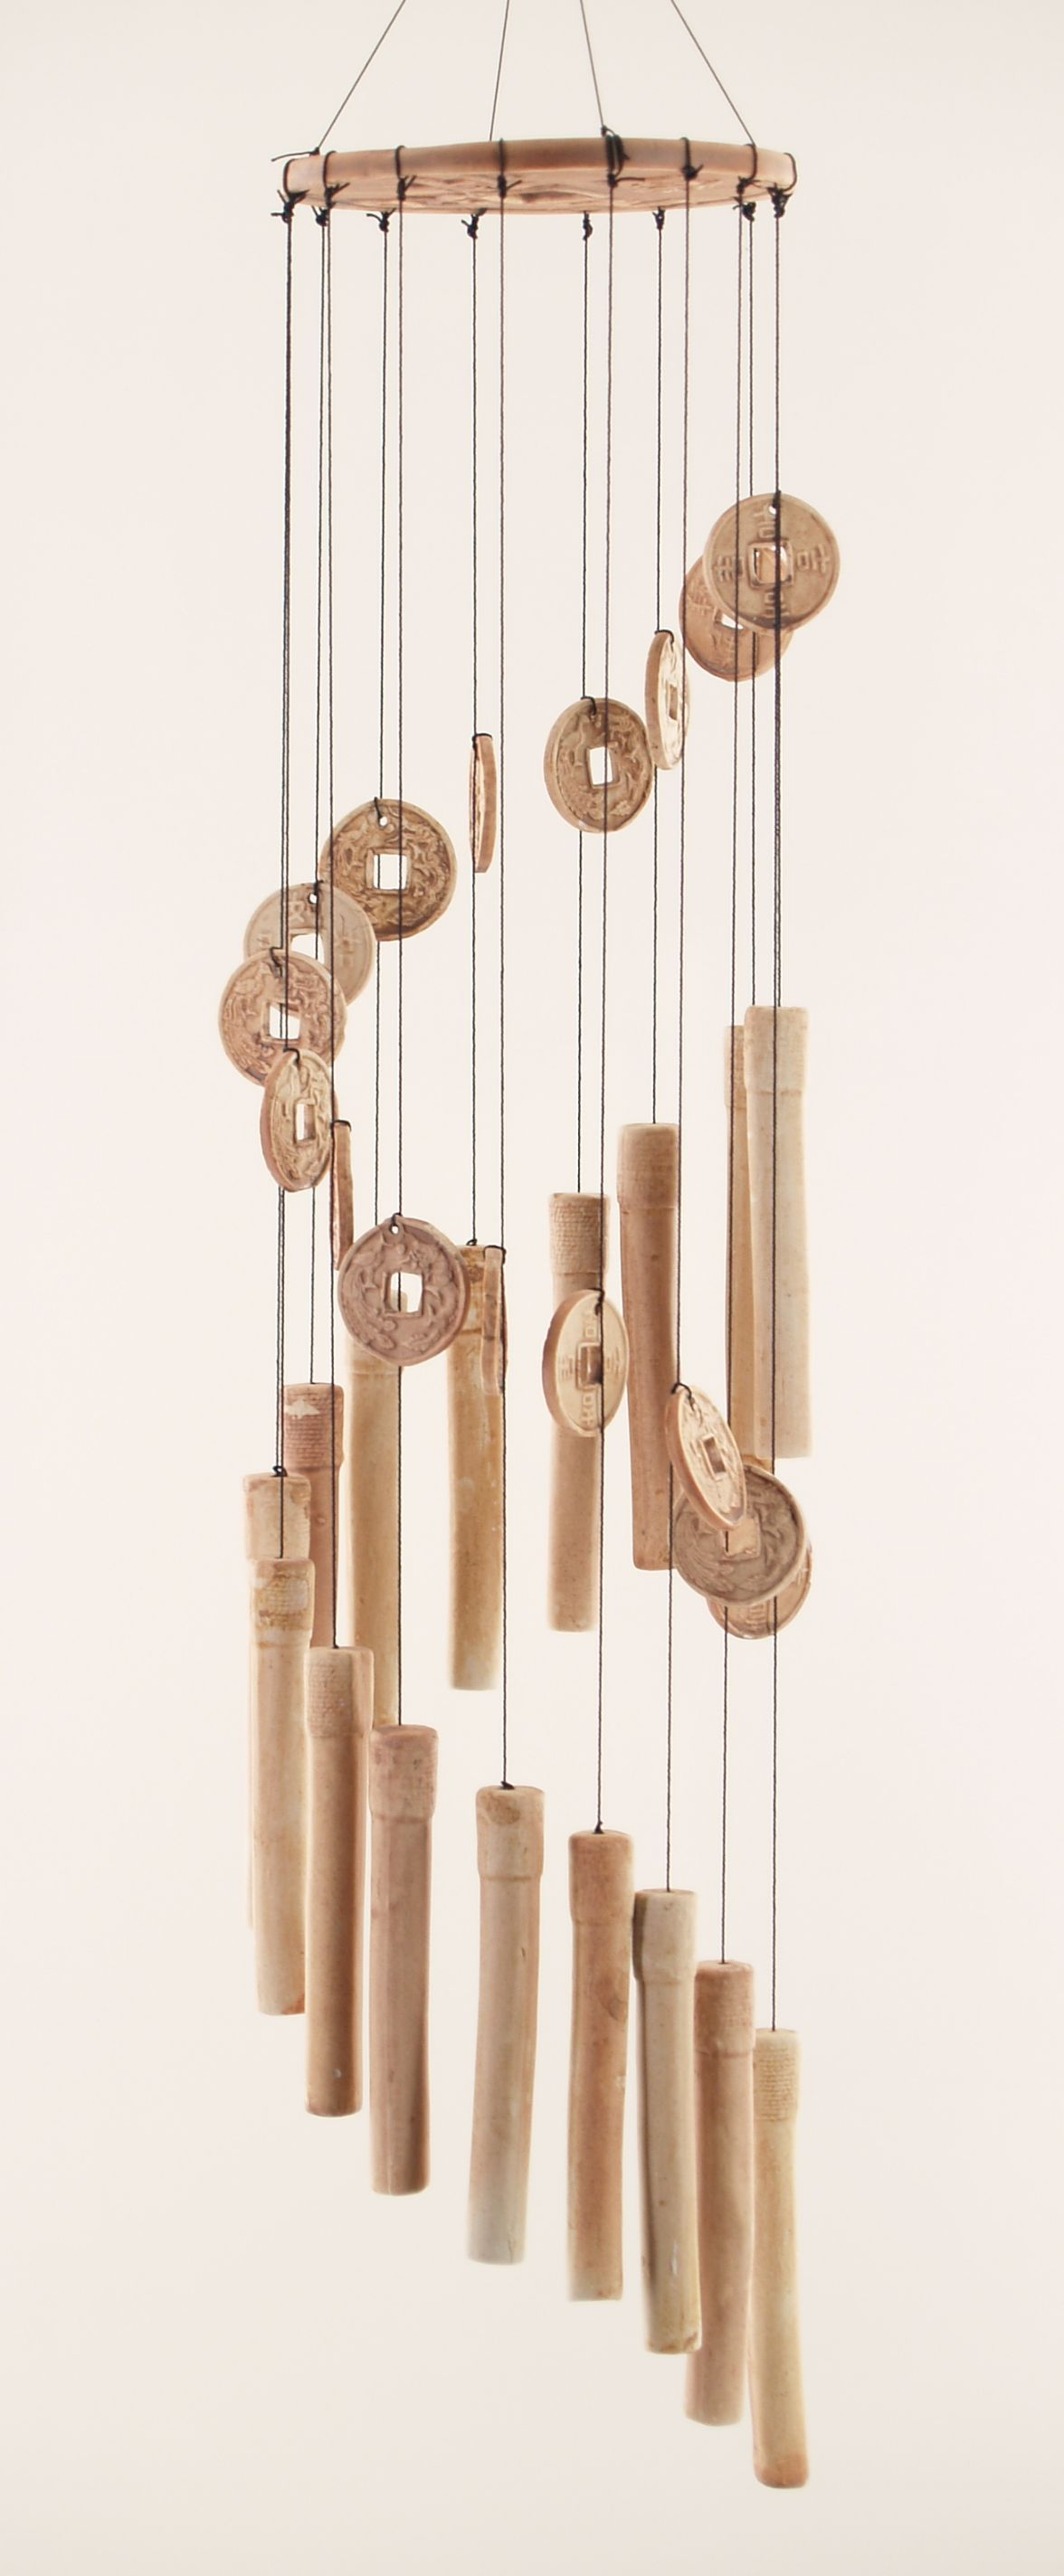 pictures of wind chimes | Bamboo & Coins Clay Wind Chime